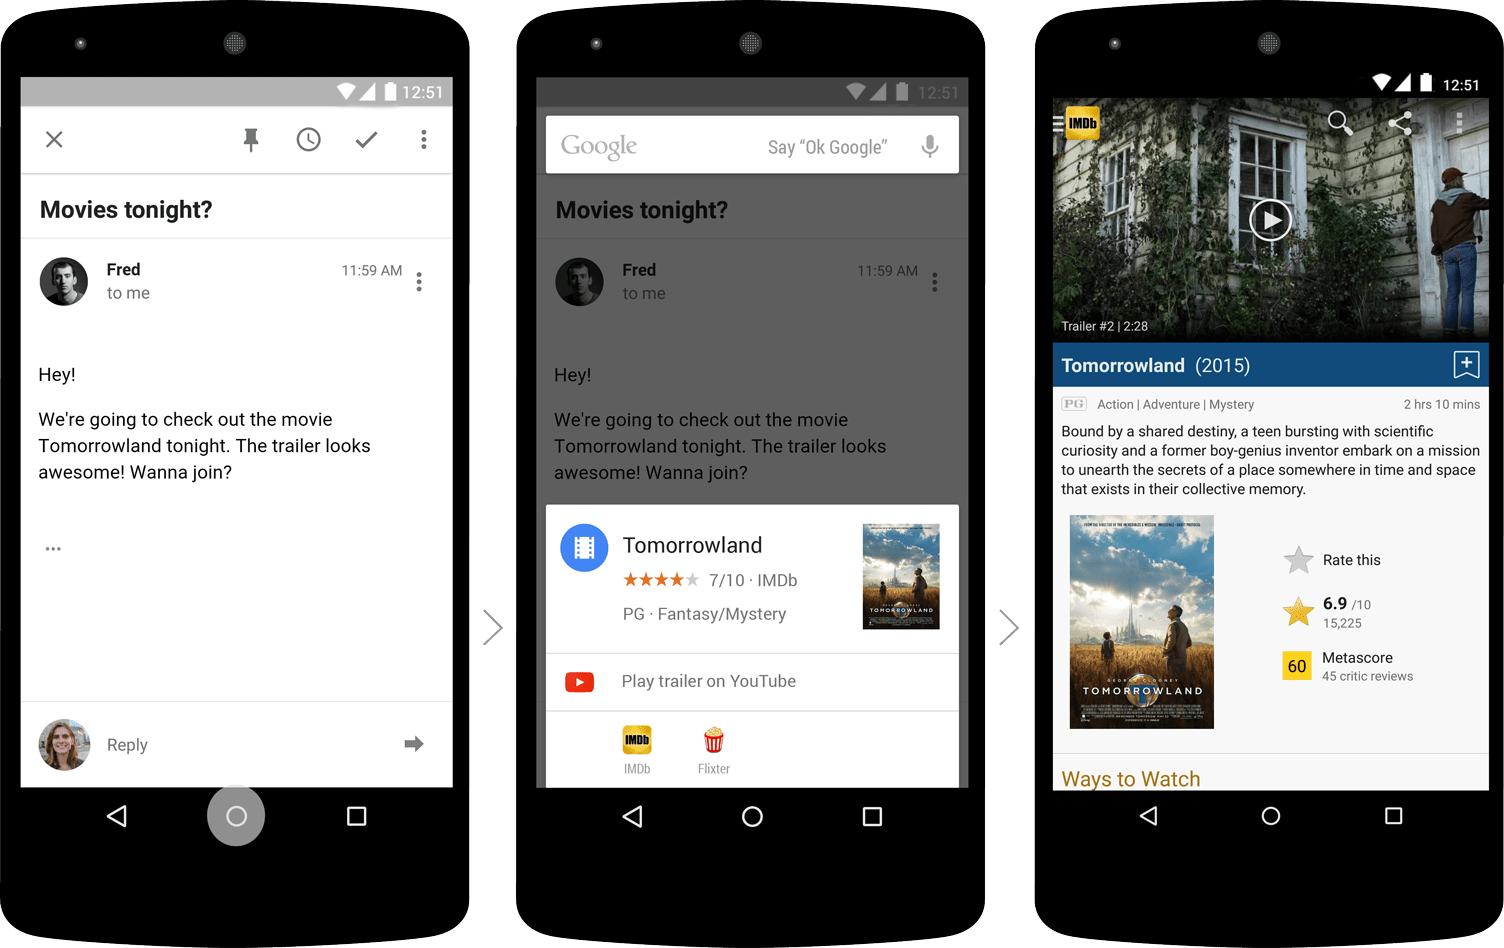 Phones showing Google's new Now on Tap feature